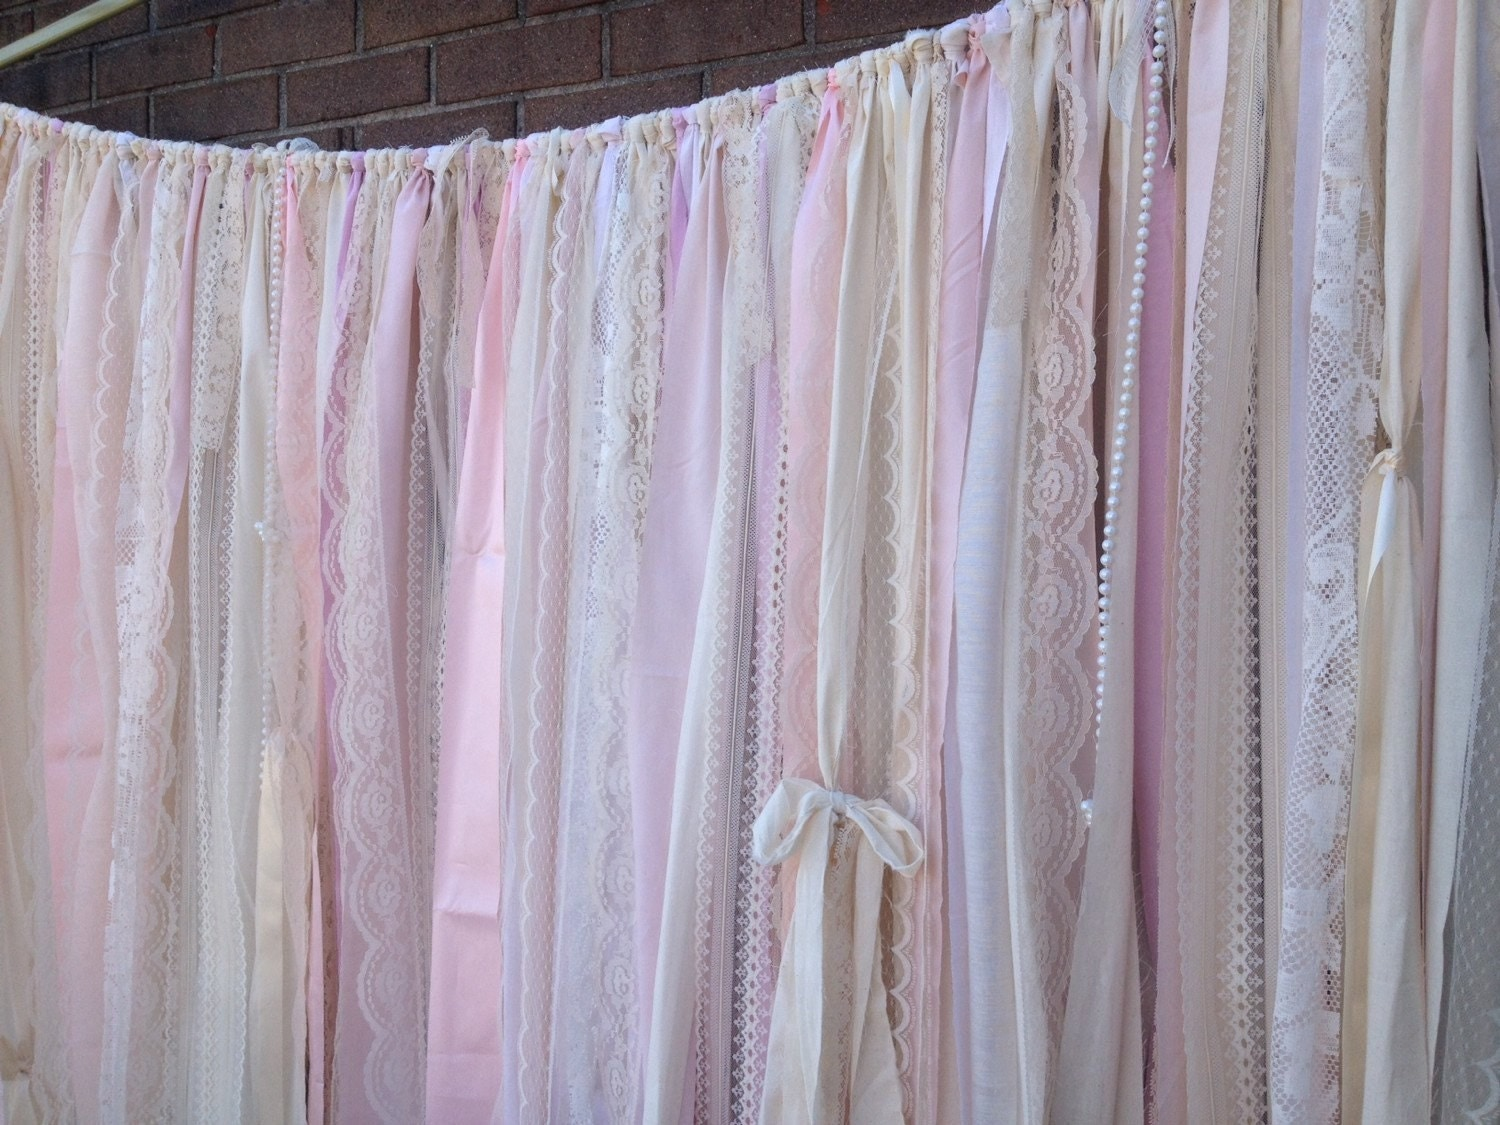 Boho window curtains - Blush Backdrop Pink Ivory Wedding Long Fabric Lace Rag Garland Prairie Ribbon Curtains Photobooth Rustic Wedding Shabby Boho Farmhouse